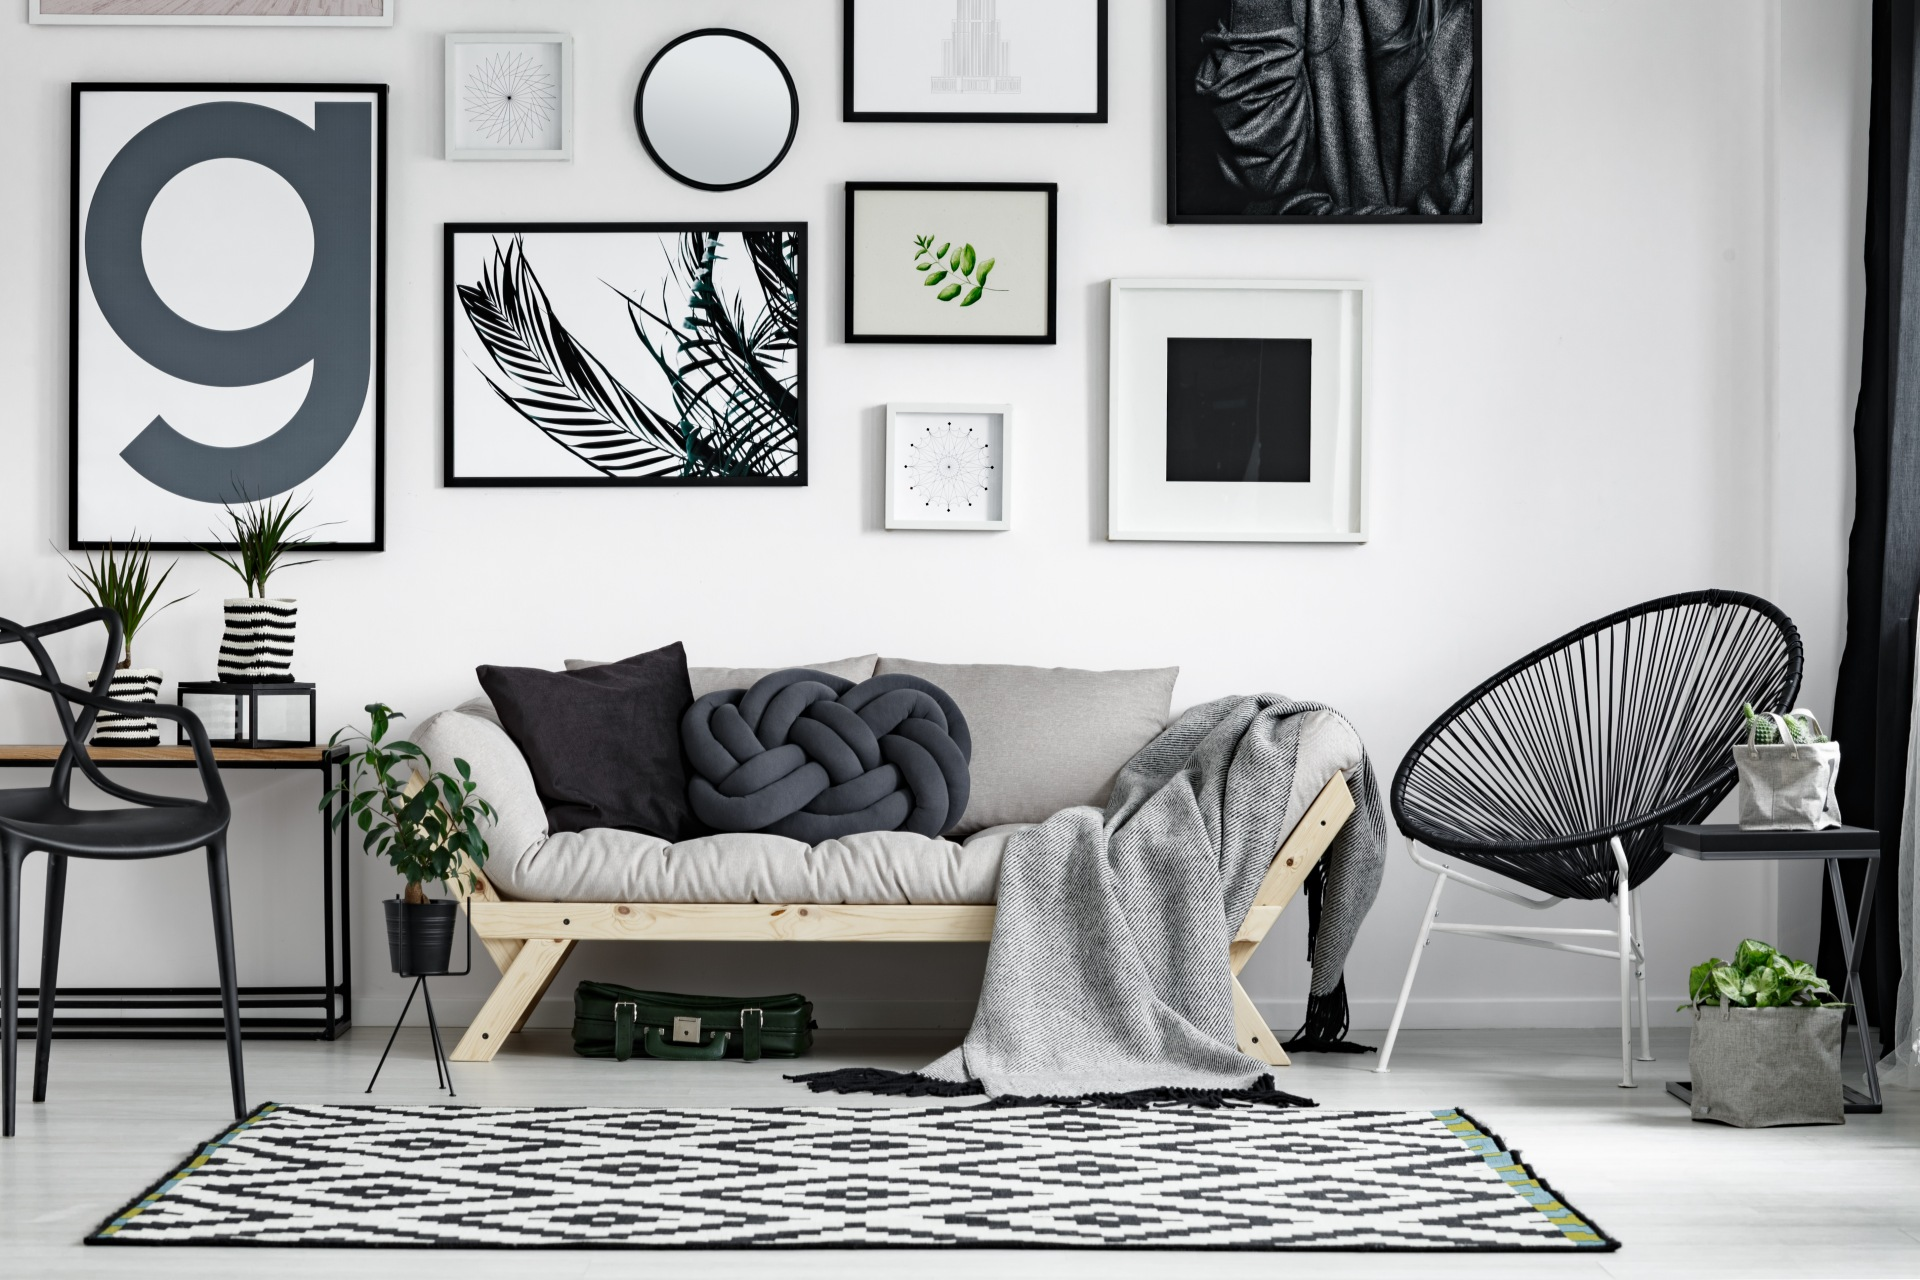 5 Ways for Homesellers to Freshen Their Home Décor